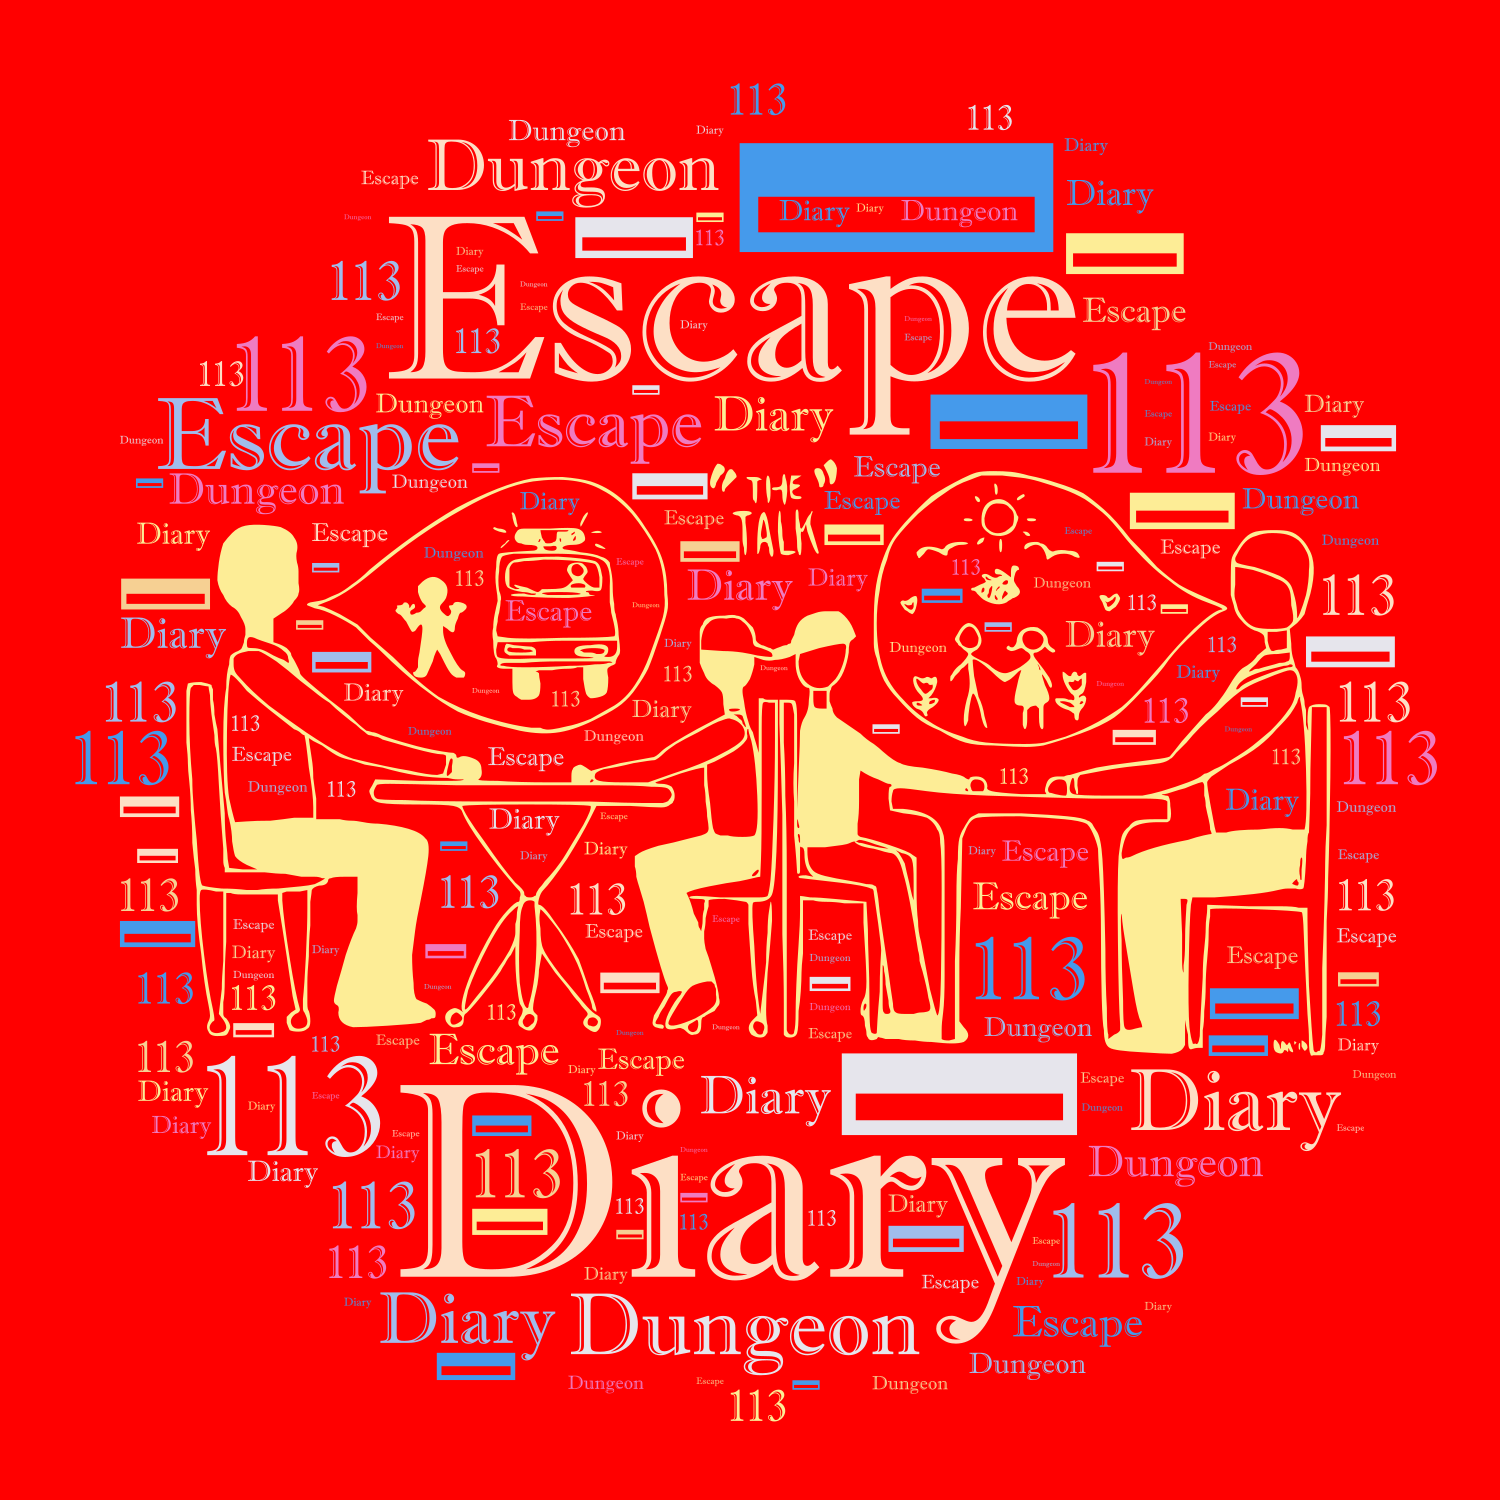 Escape Diary 113 - Dungeon